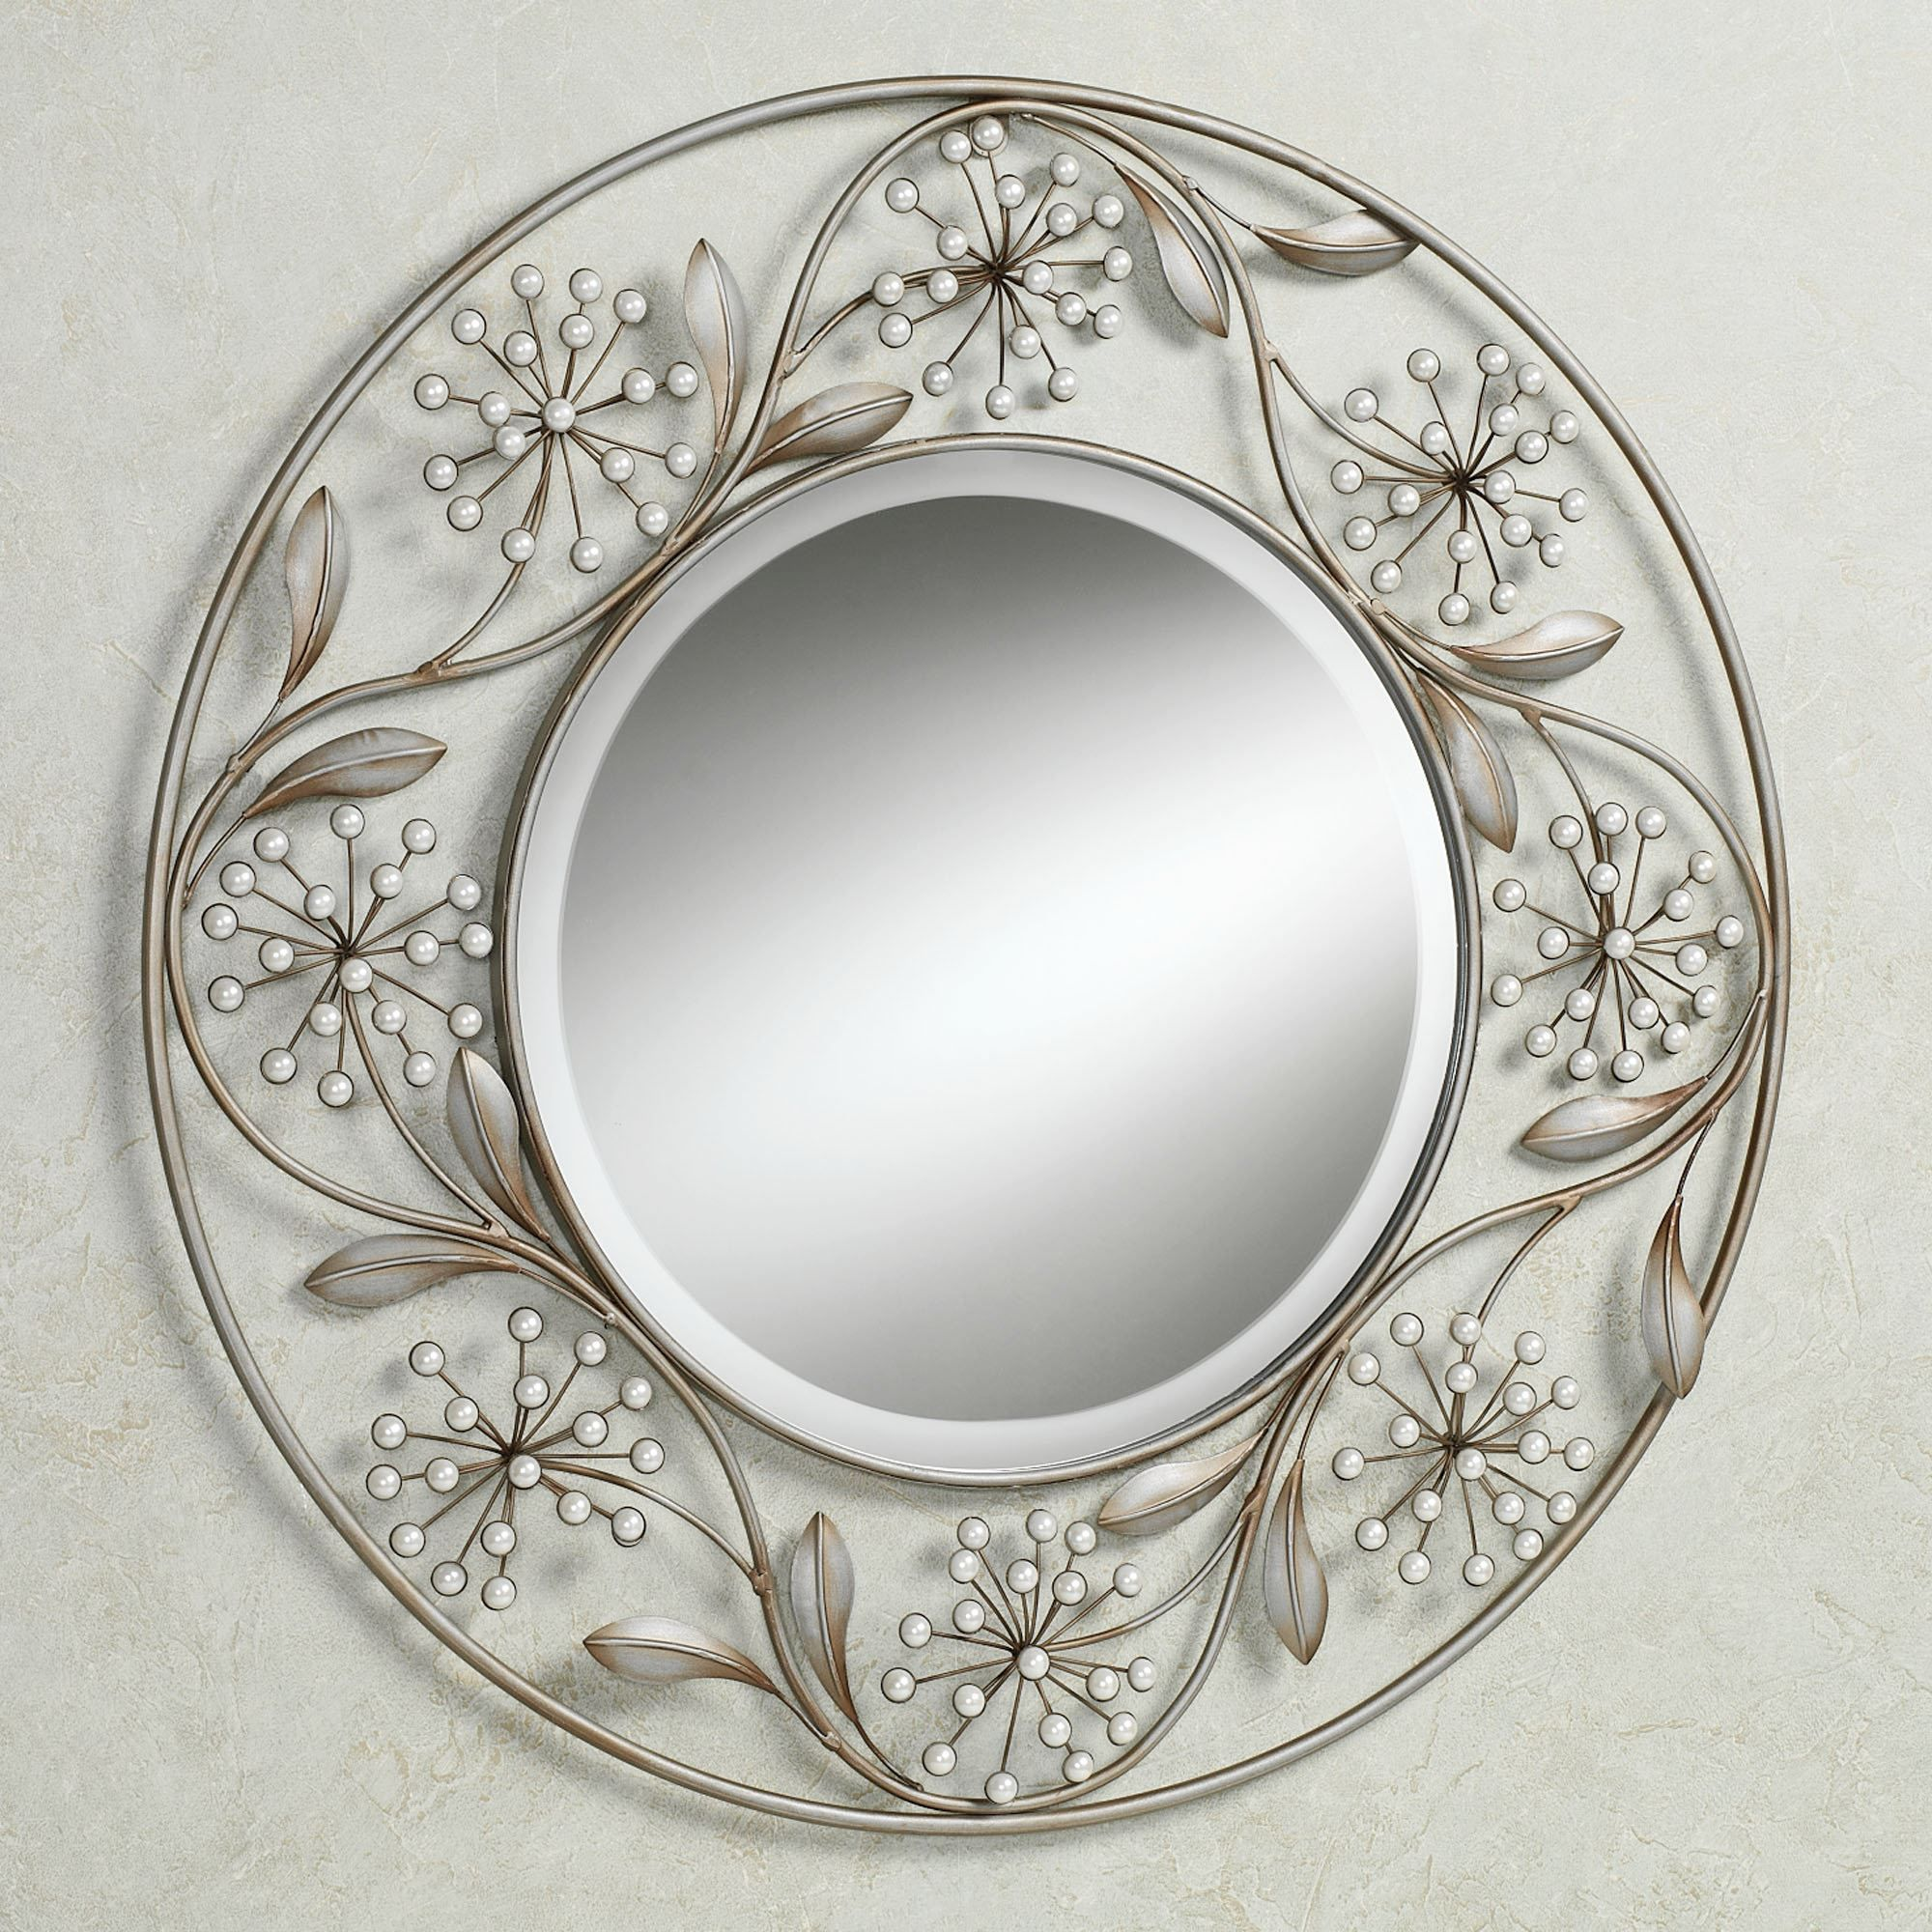 decor online decorative coastal with mirrors chic mirror